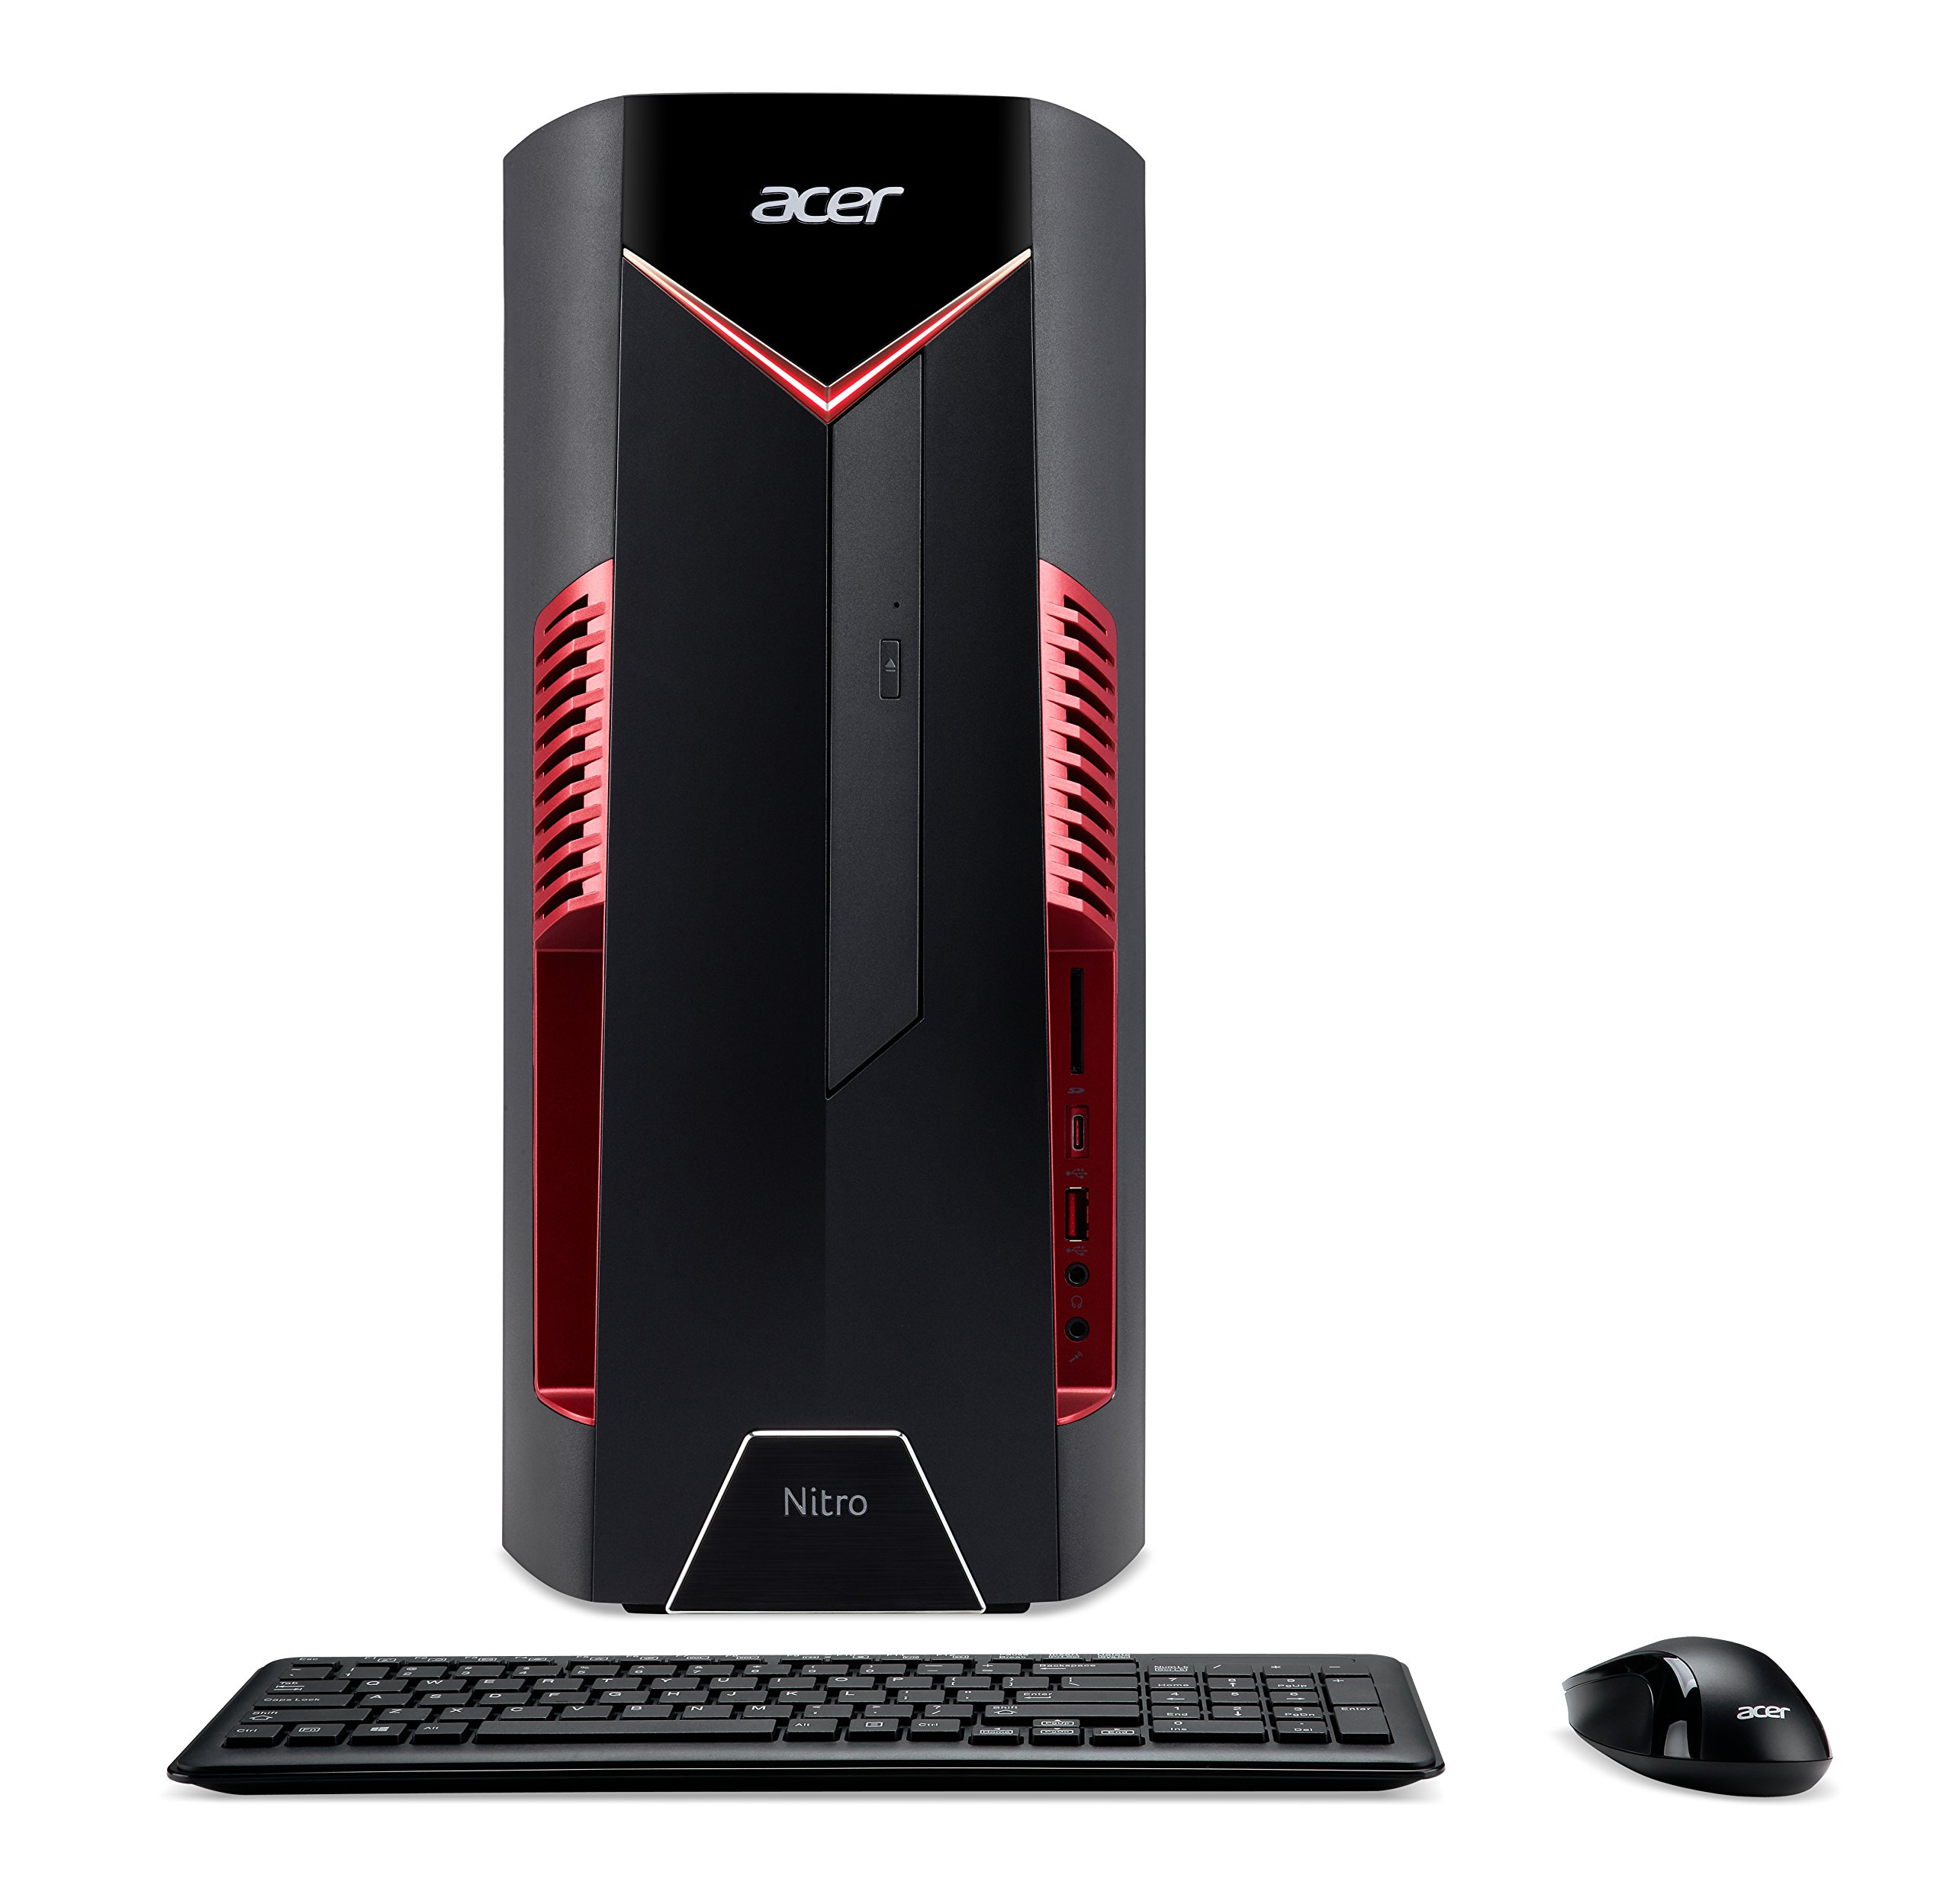 Acer-Nitro-N50-600-Gaming-PC